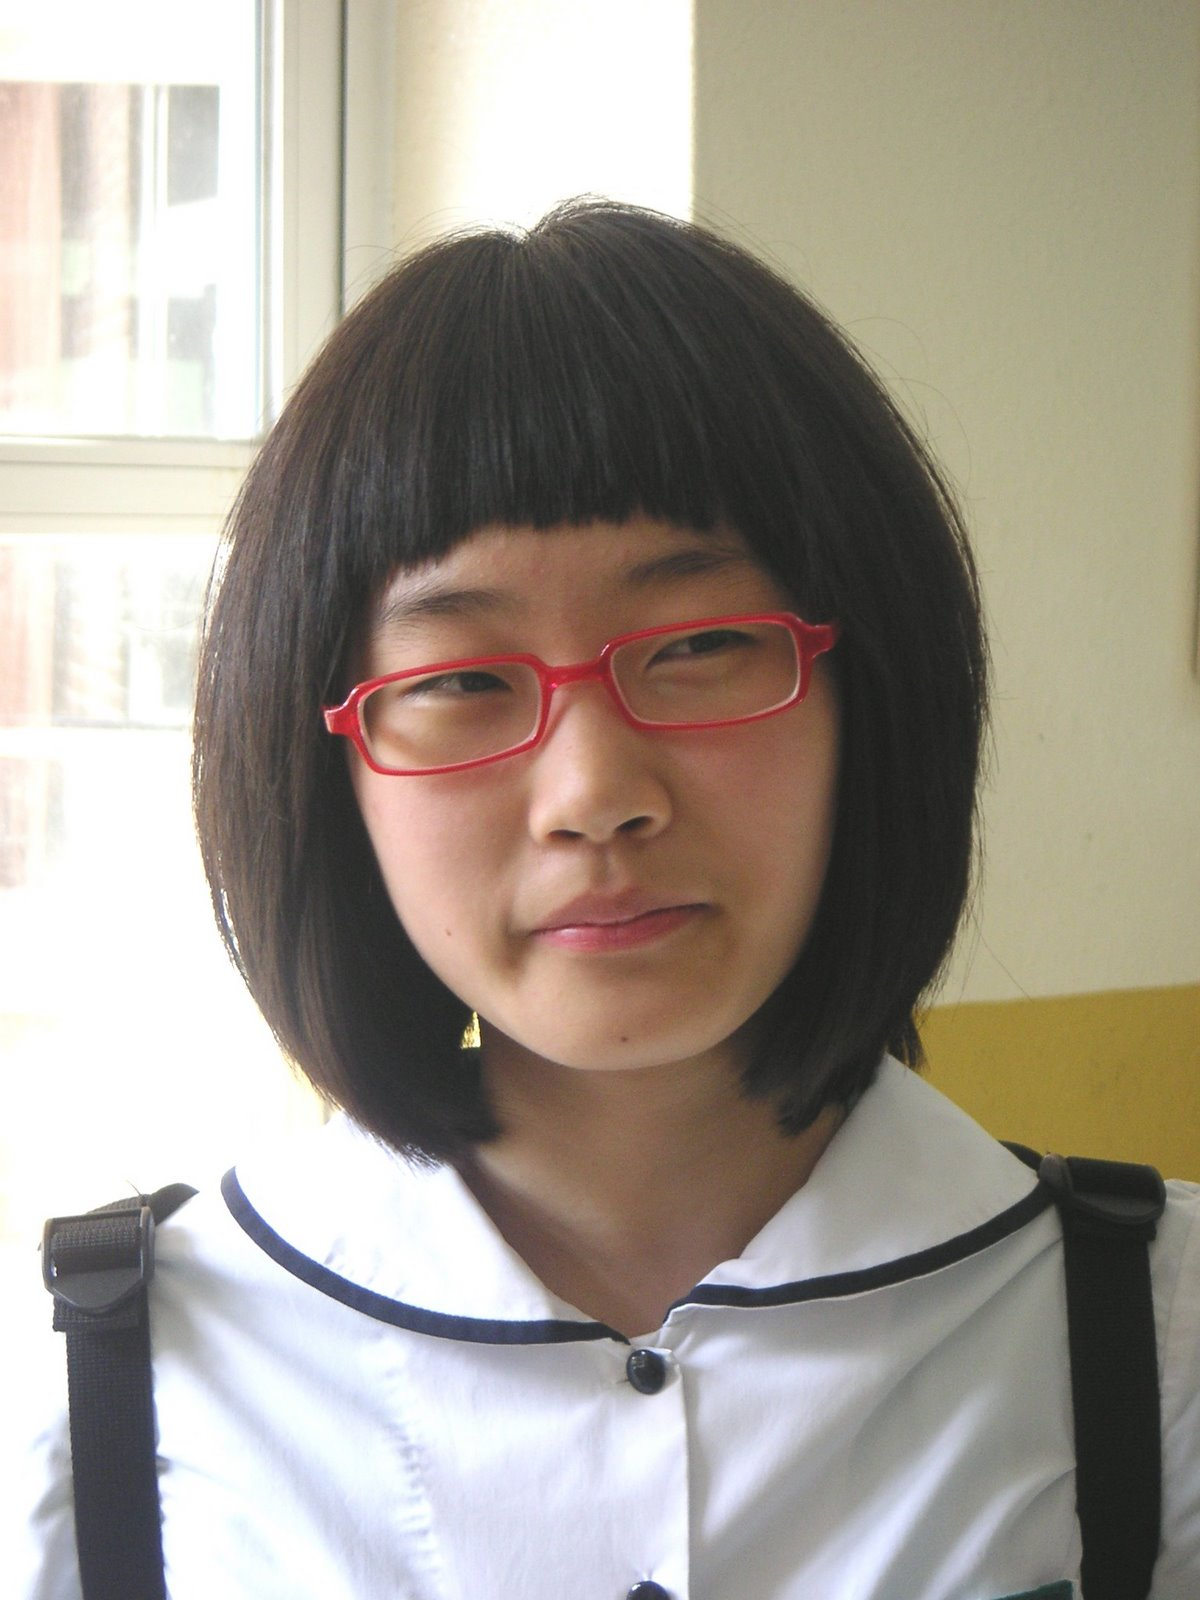 glasses girl Asian nerd